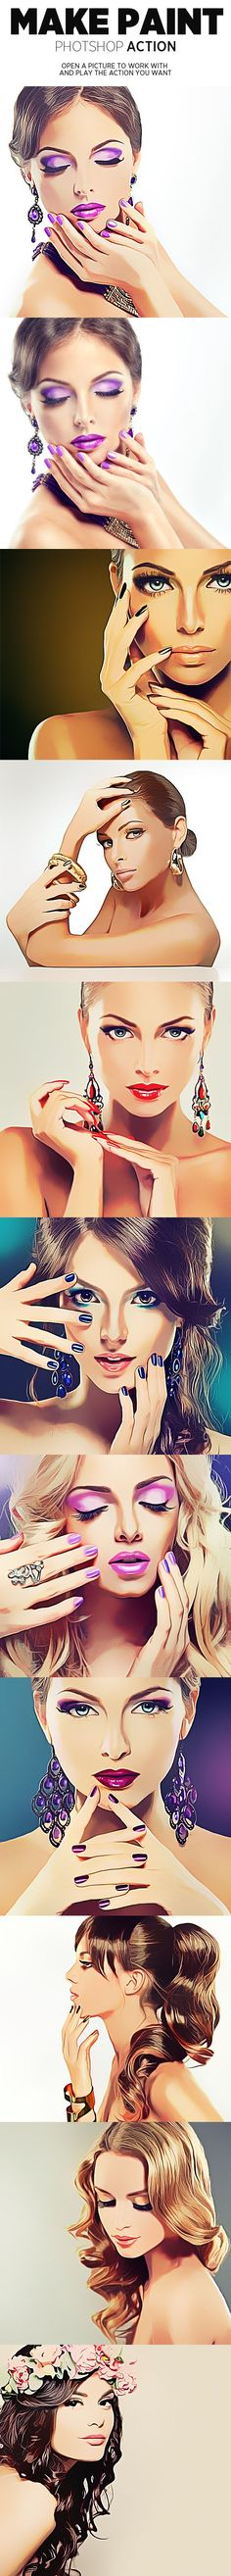 Make Paint Photoshop Action - Photo Effects Actions